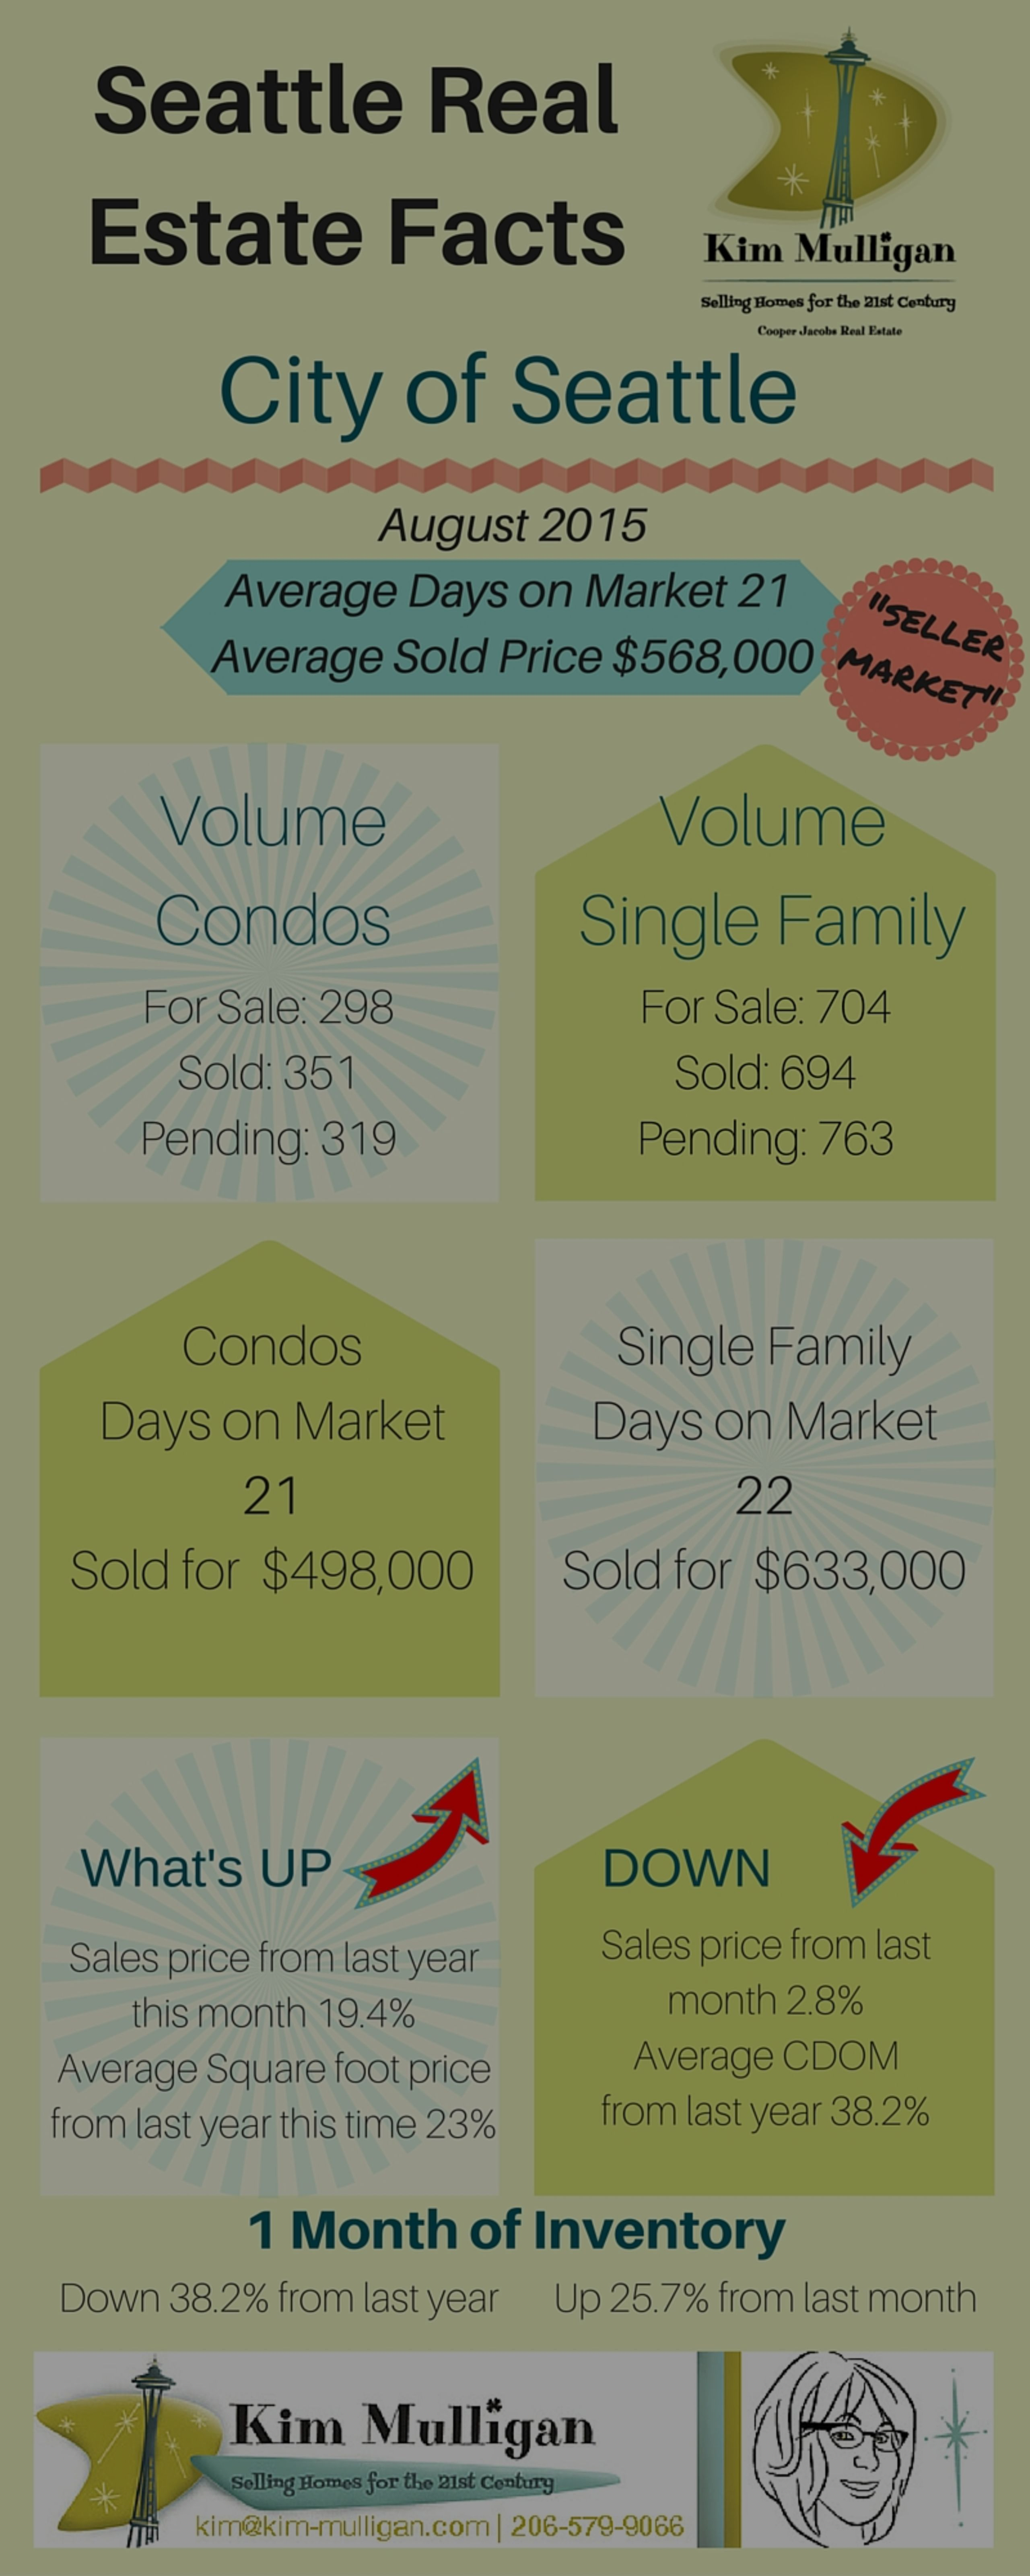 Seattle Real Estate Market Information – Combined Days on Market Myth Explained